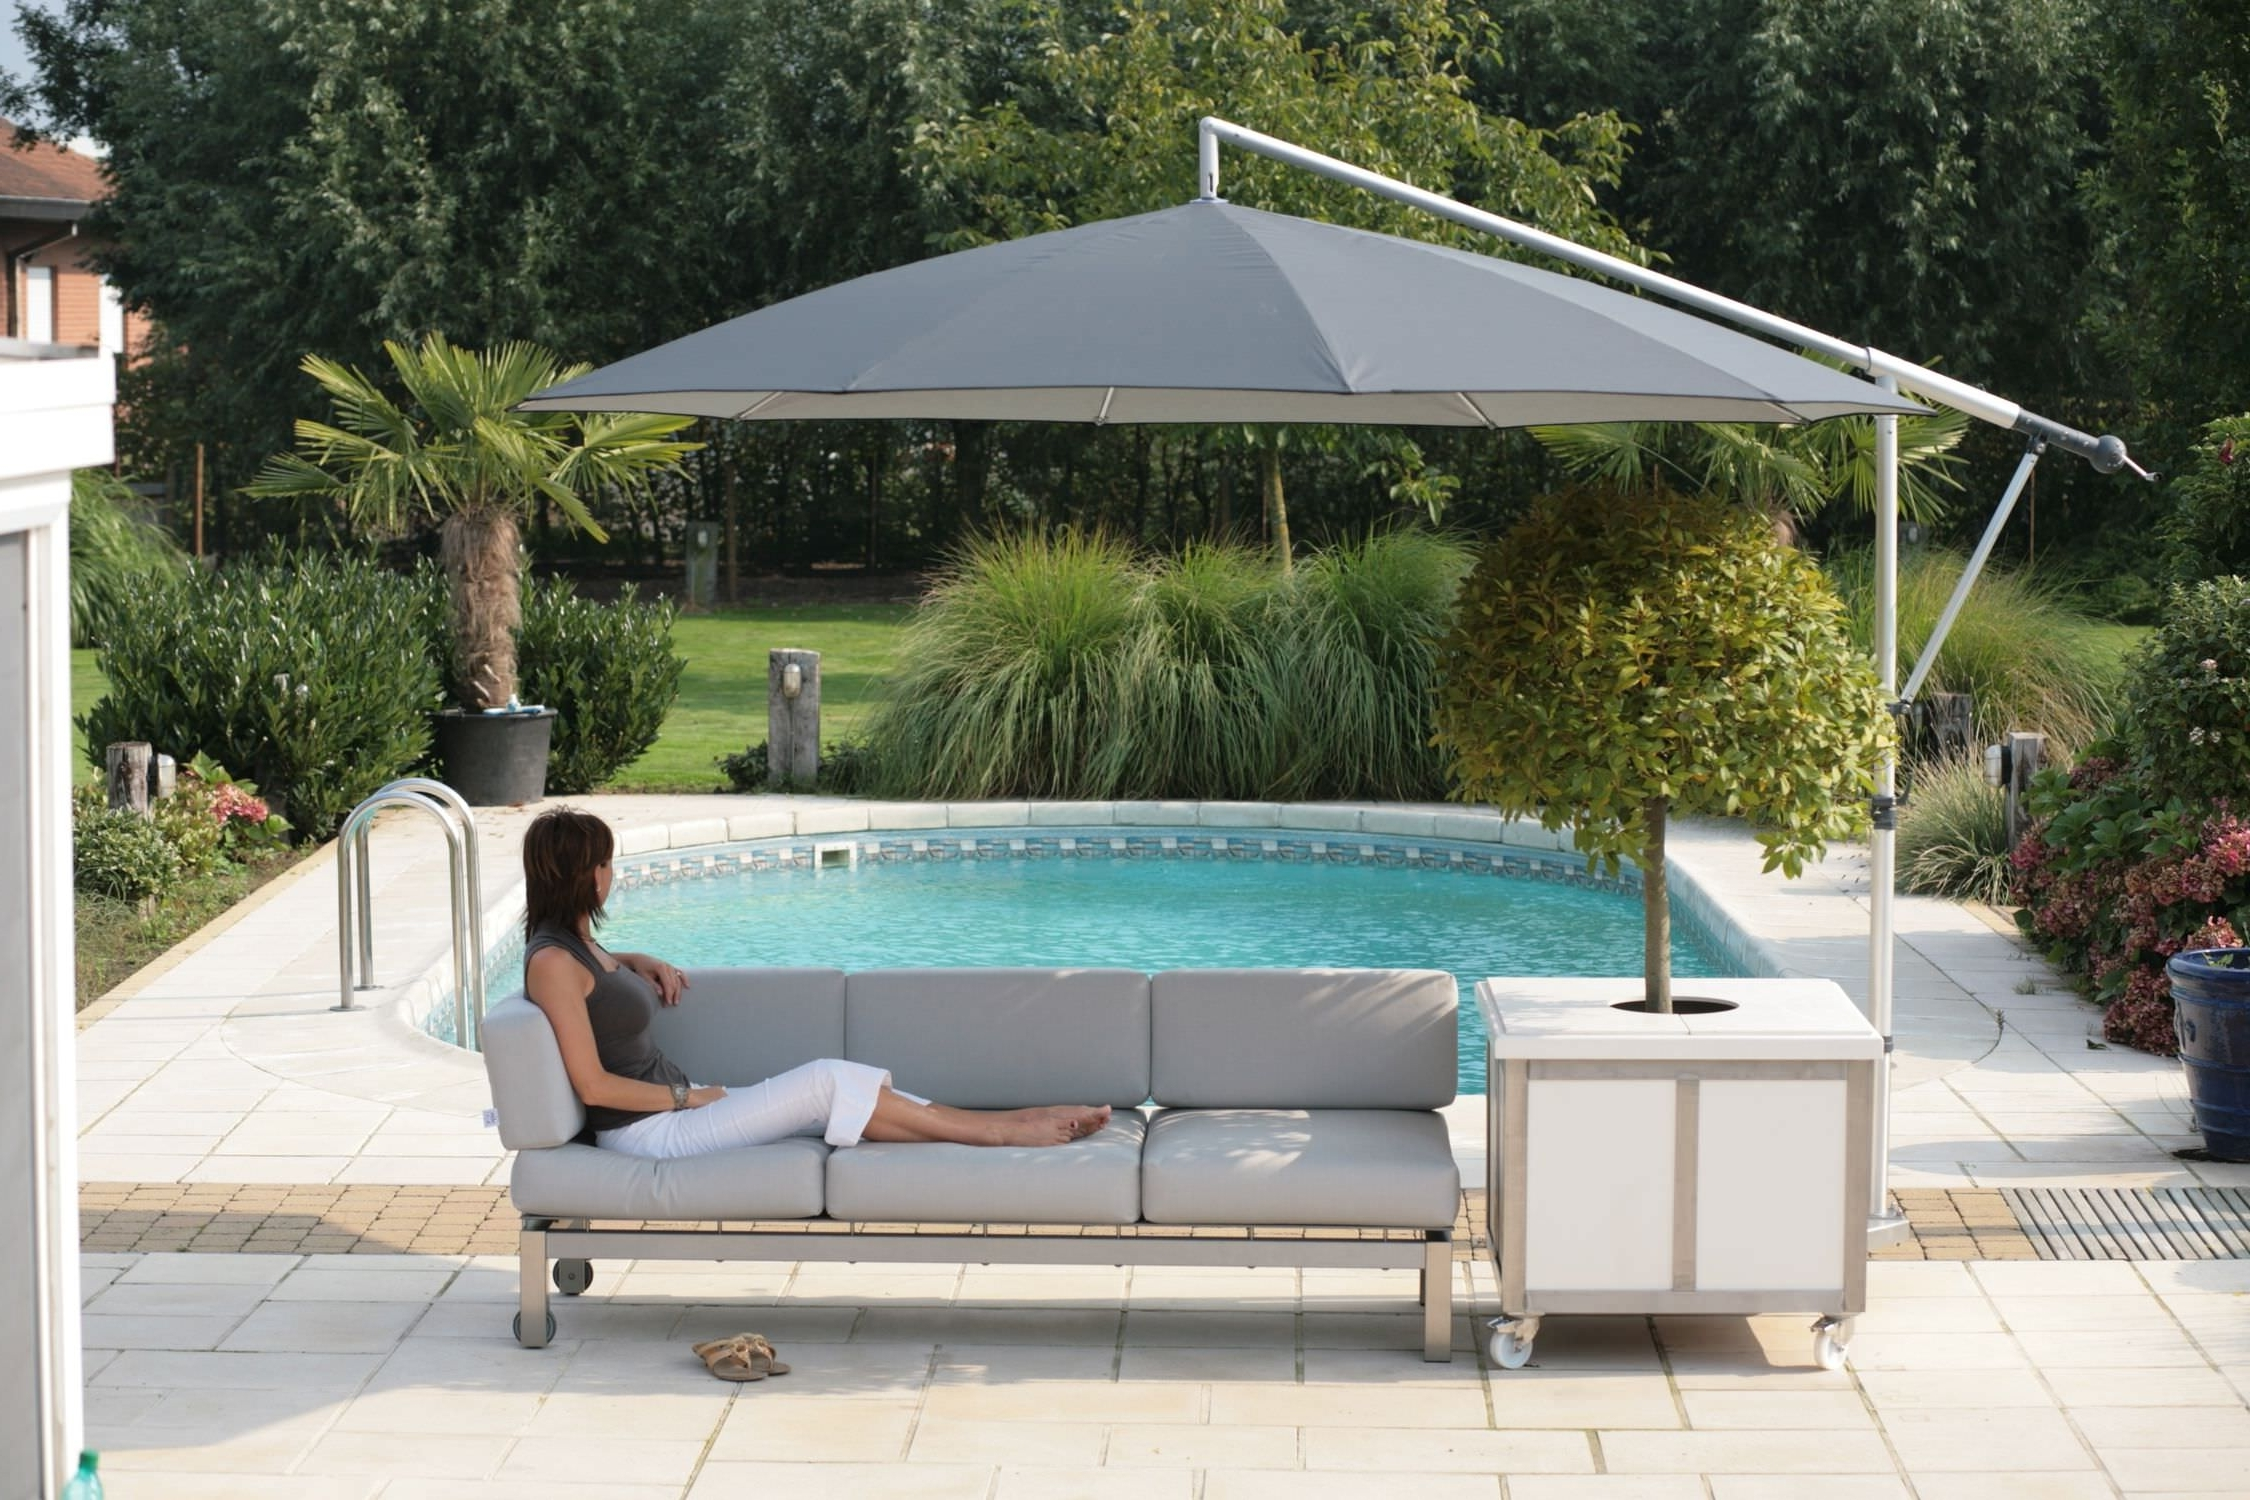 Best And Newest Offset Patio Umbrella Base Weights : Offset Patio Umbrella And A With Offset Patio Umbrellas With Base (View 3 of 20)